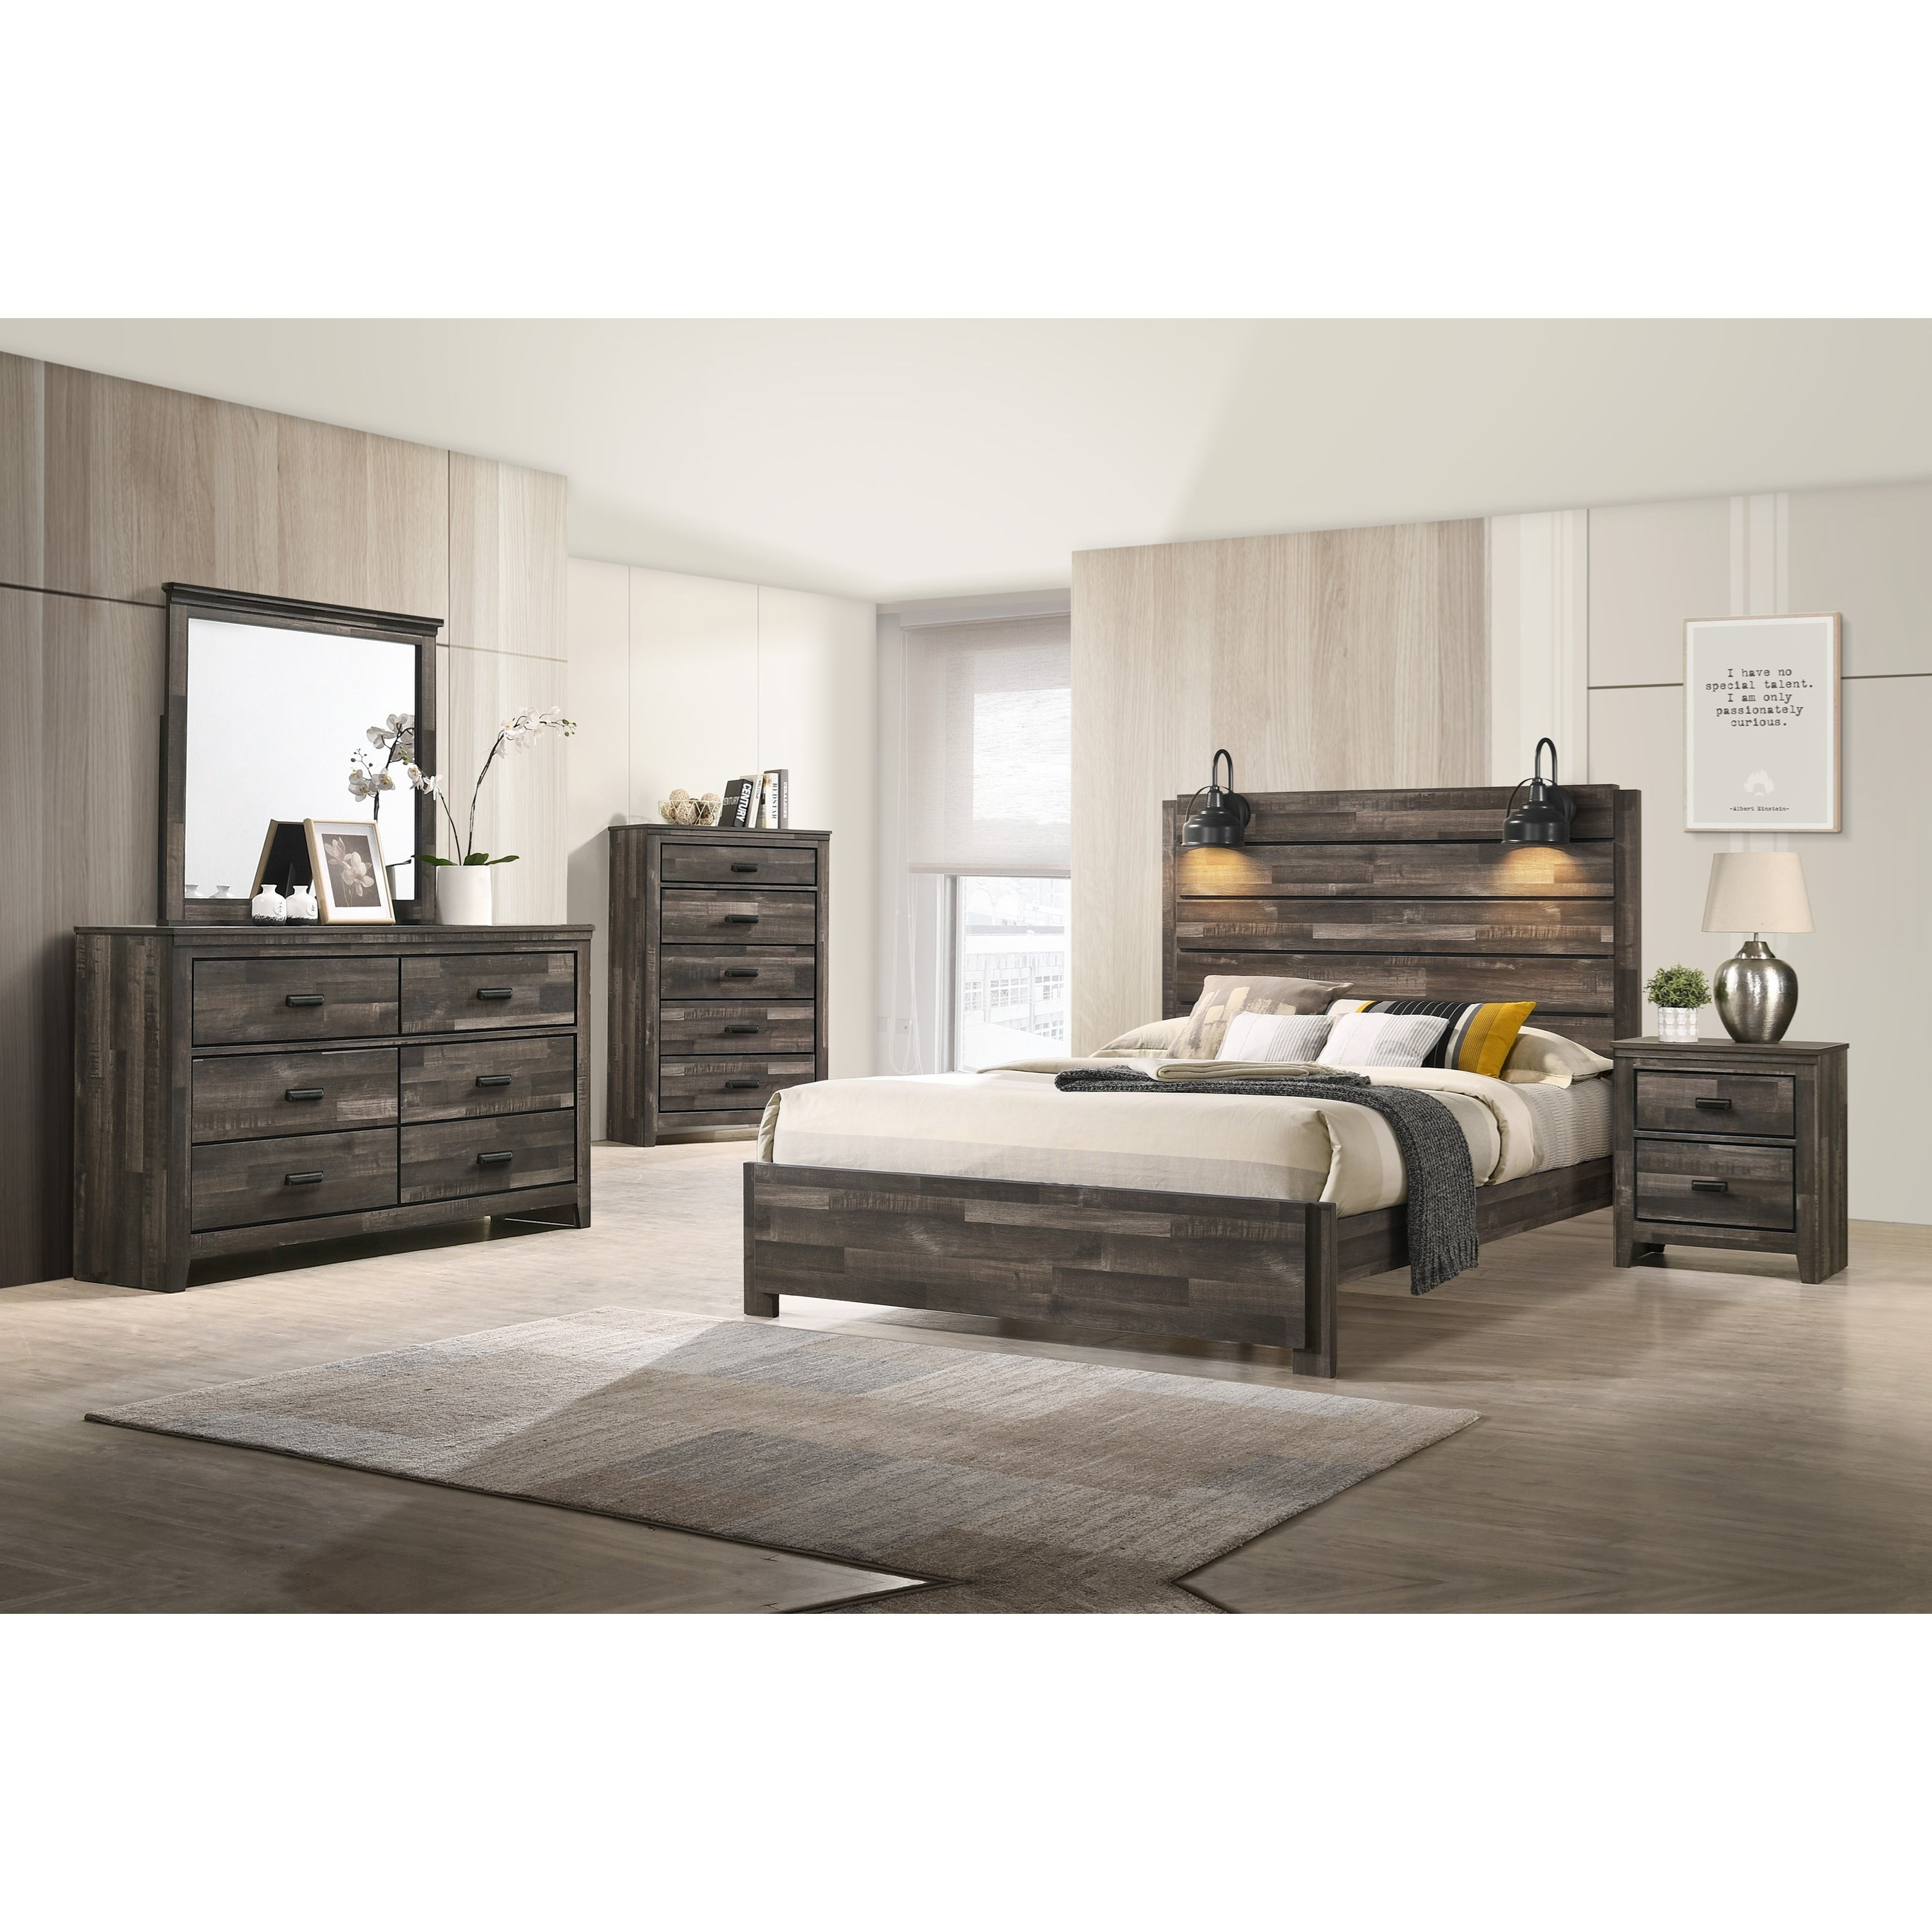 Carter Full Bedroom Group by Crown Mark at Dunk & Bright Furniture